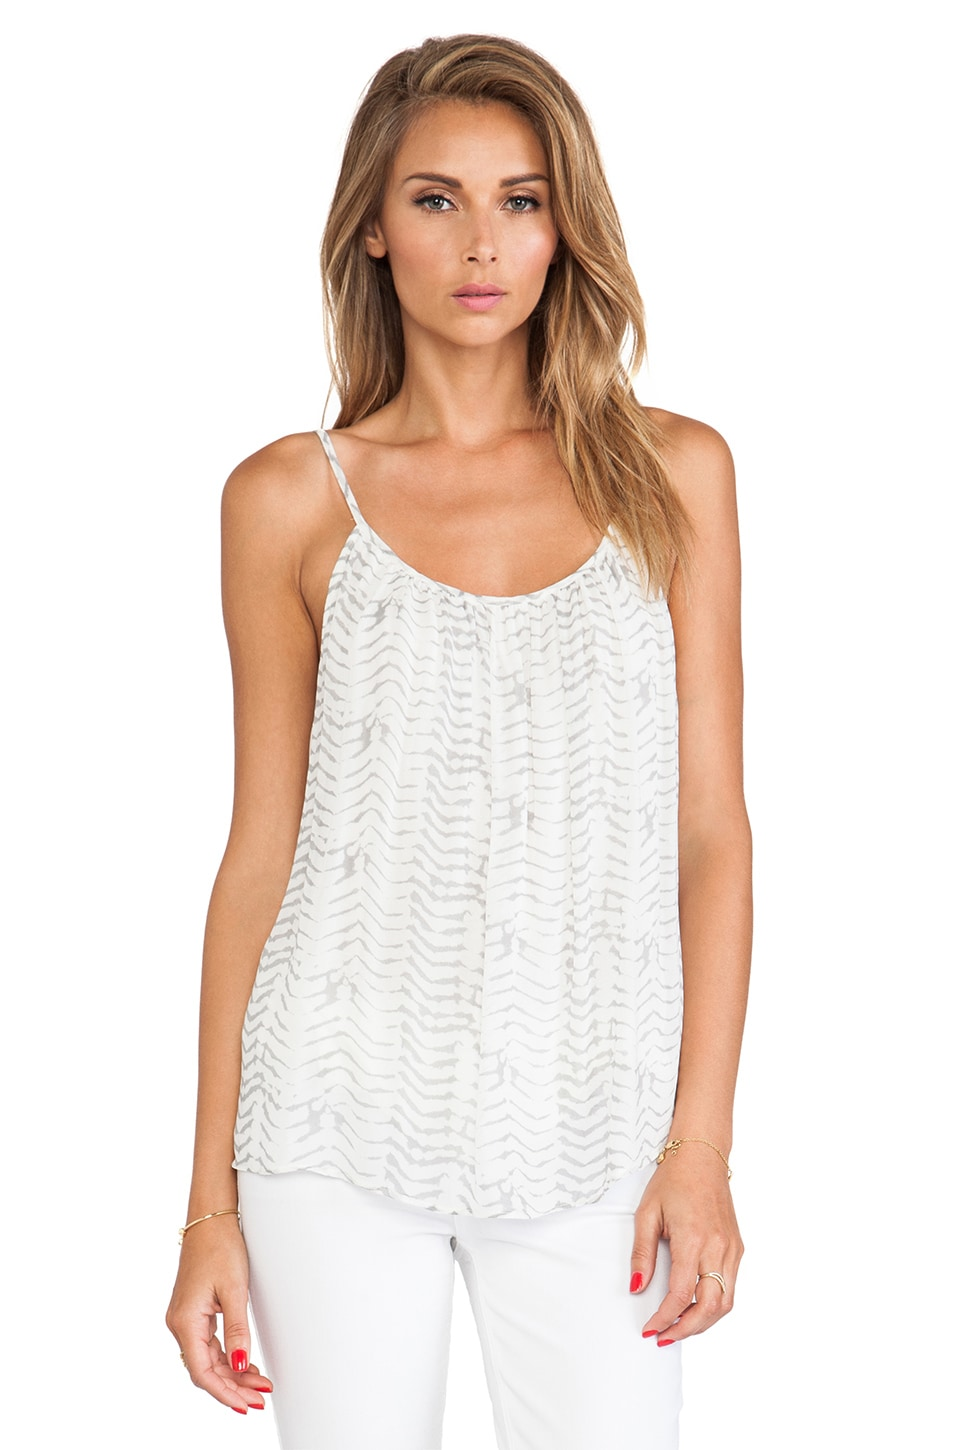 Soft Joie Diya Cami Tank in Antique White & Dark Ash Grey